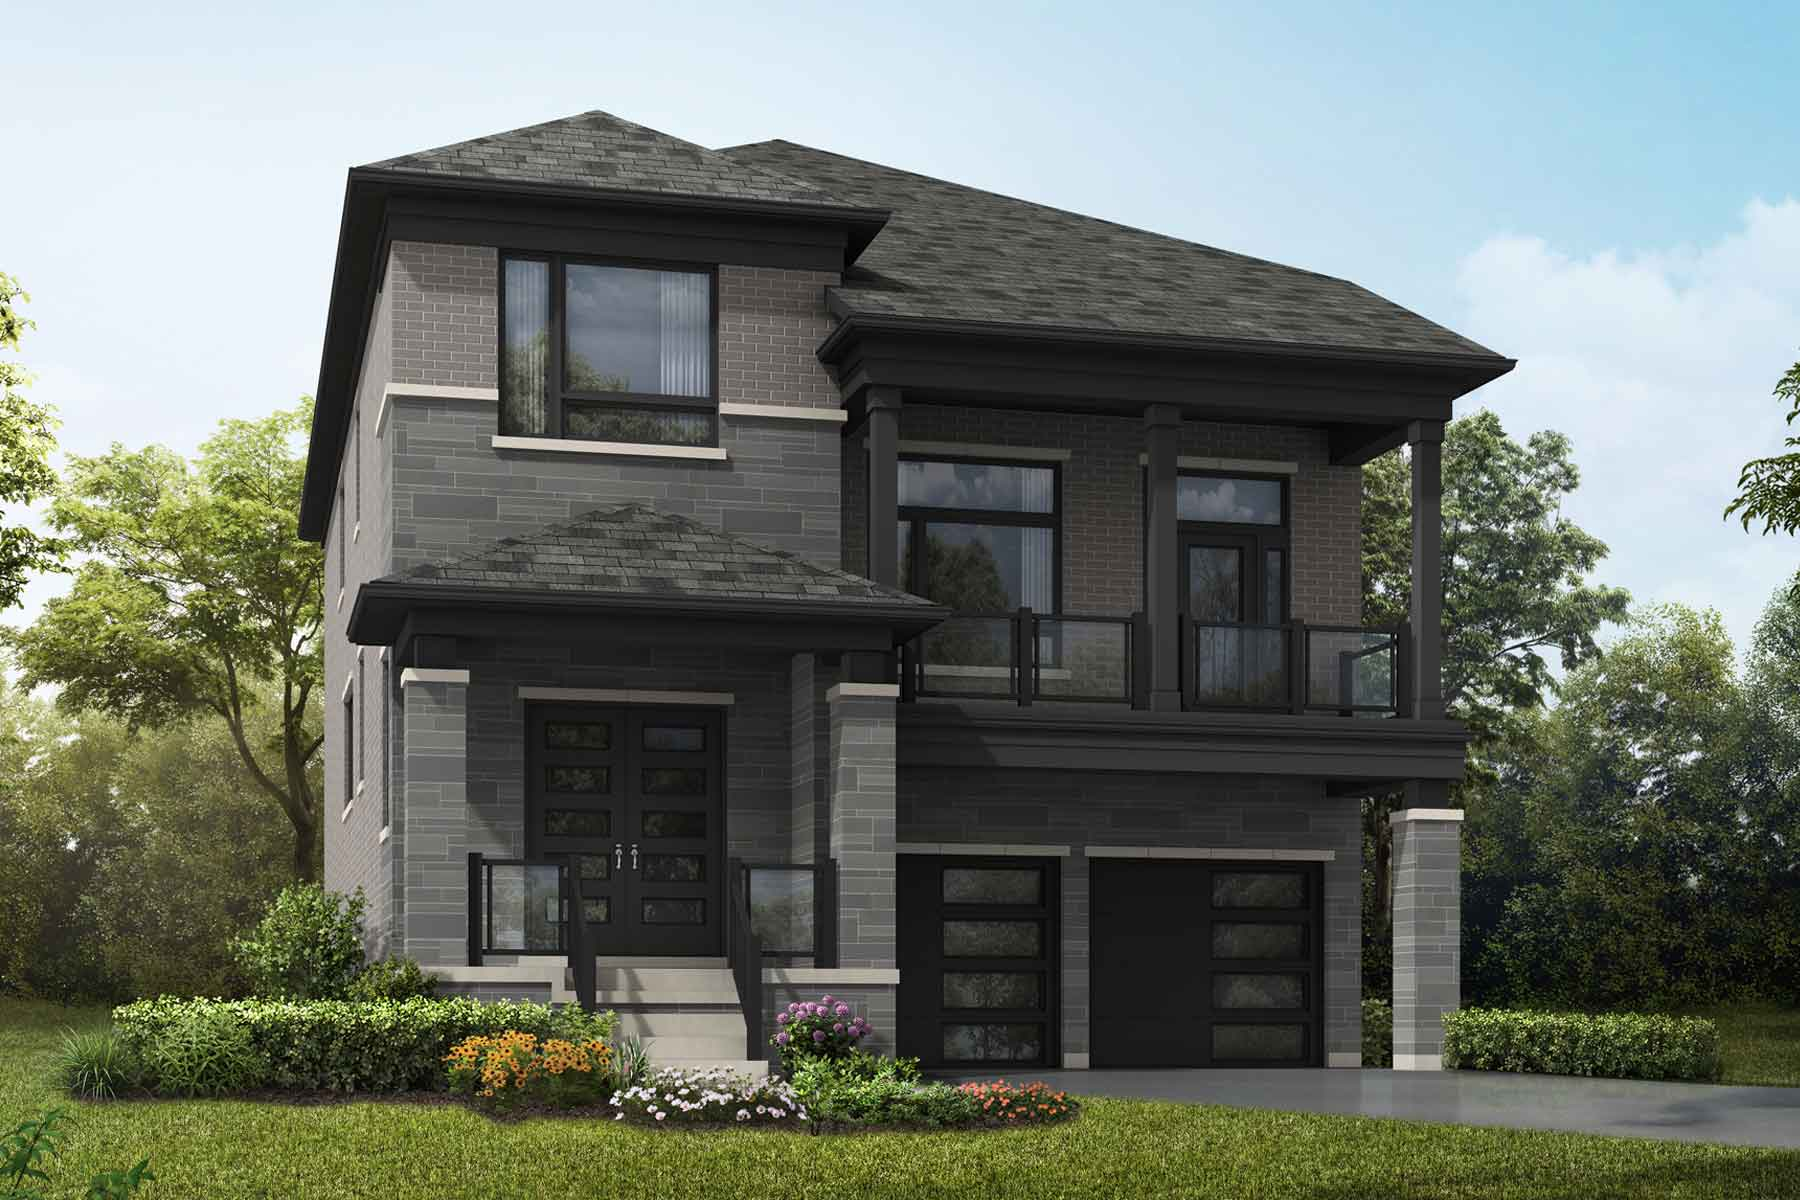 Orchid Plan modern_springwater_orchid at Springwater in Markham Ontario by Mattamy Homes